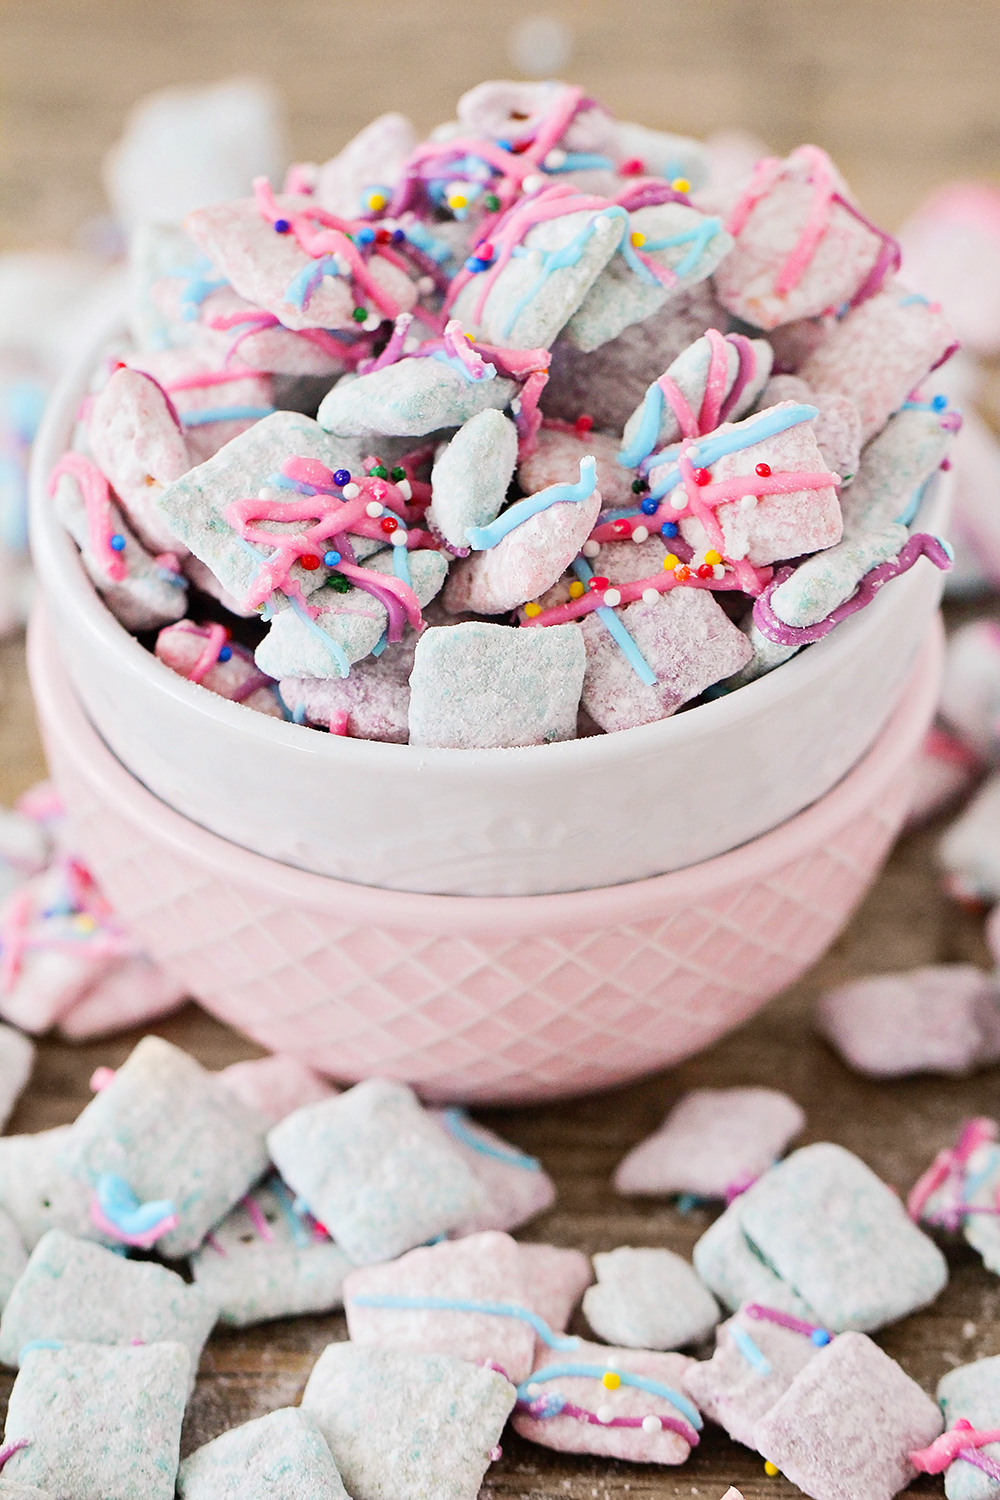 These unicorn muddy buddies are so whimsical and fun, and easy to make too!